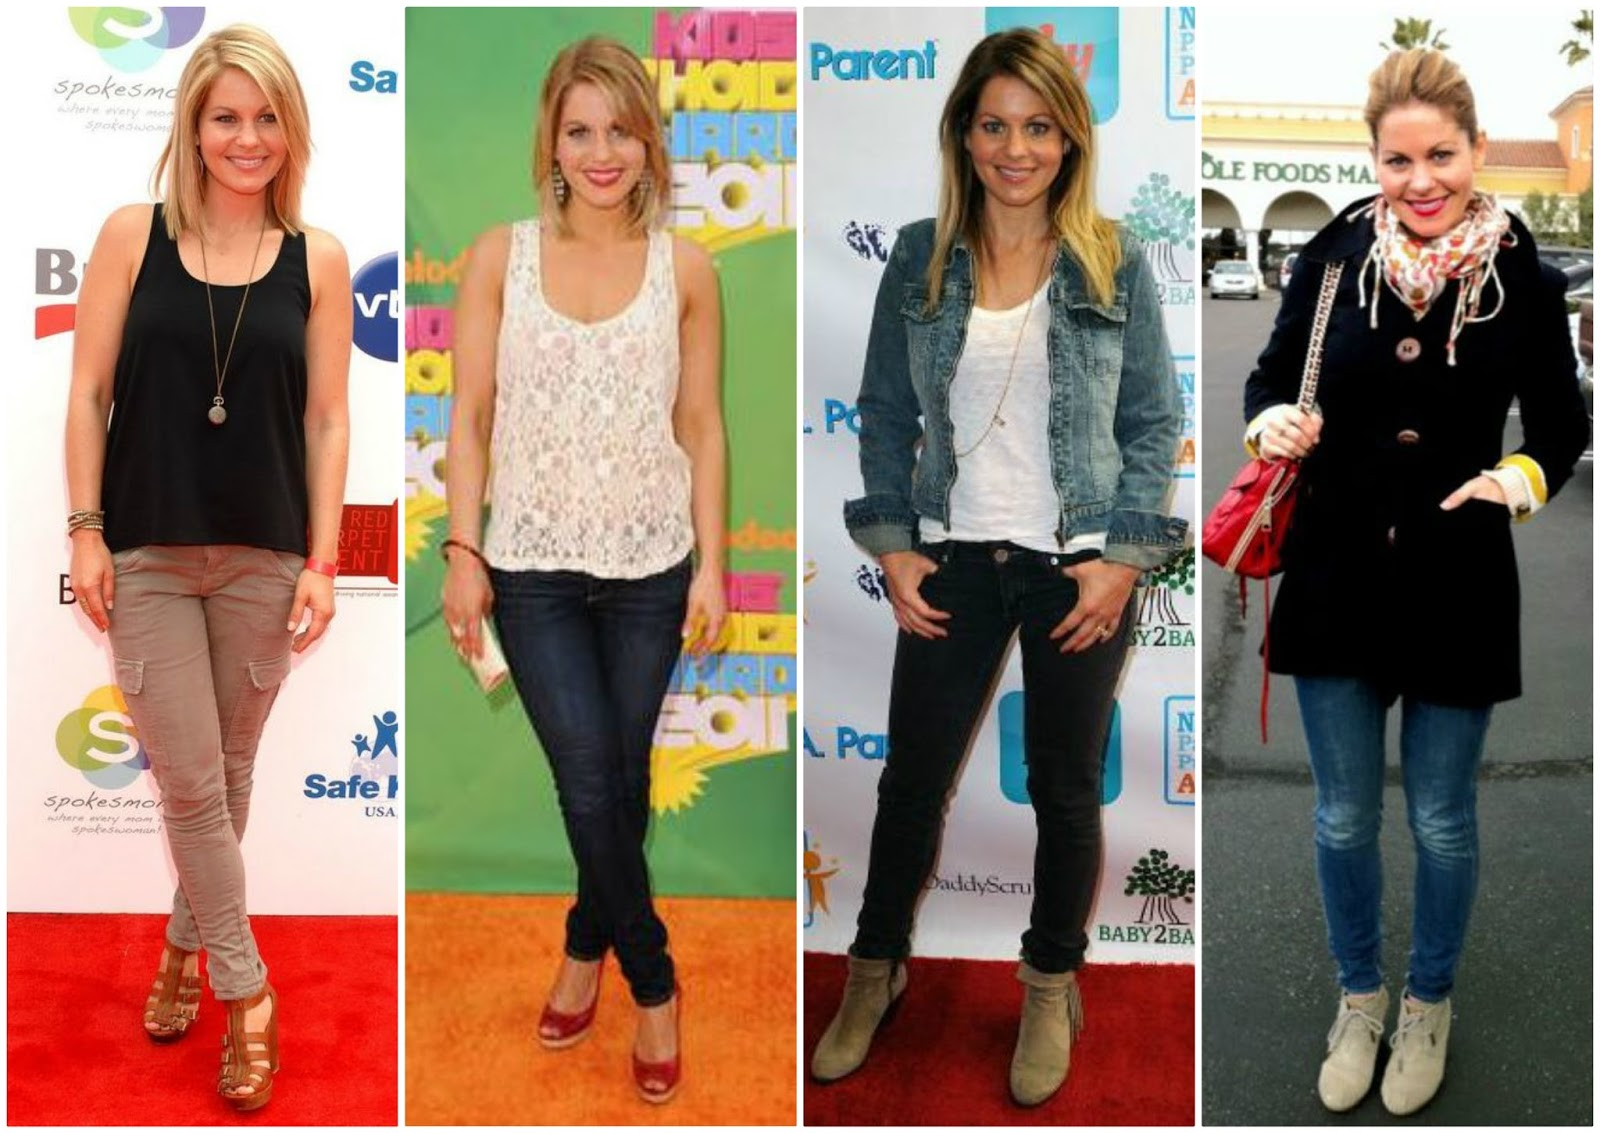 Aries Style Featuring Candace Cameron Bure On The Daily Express